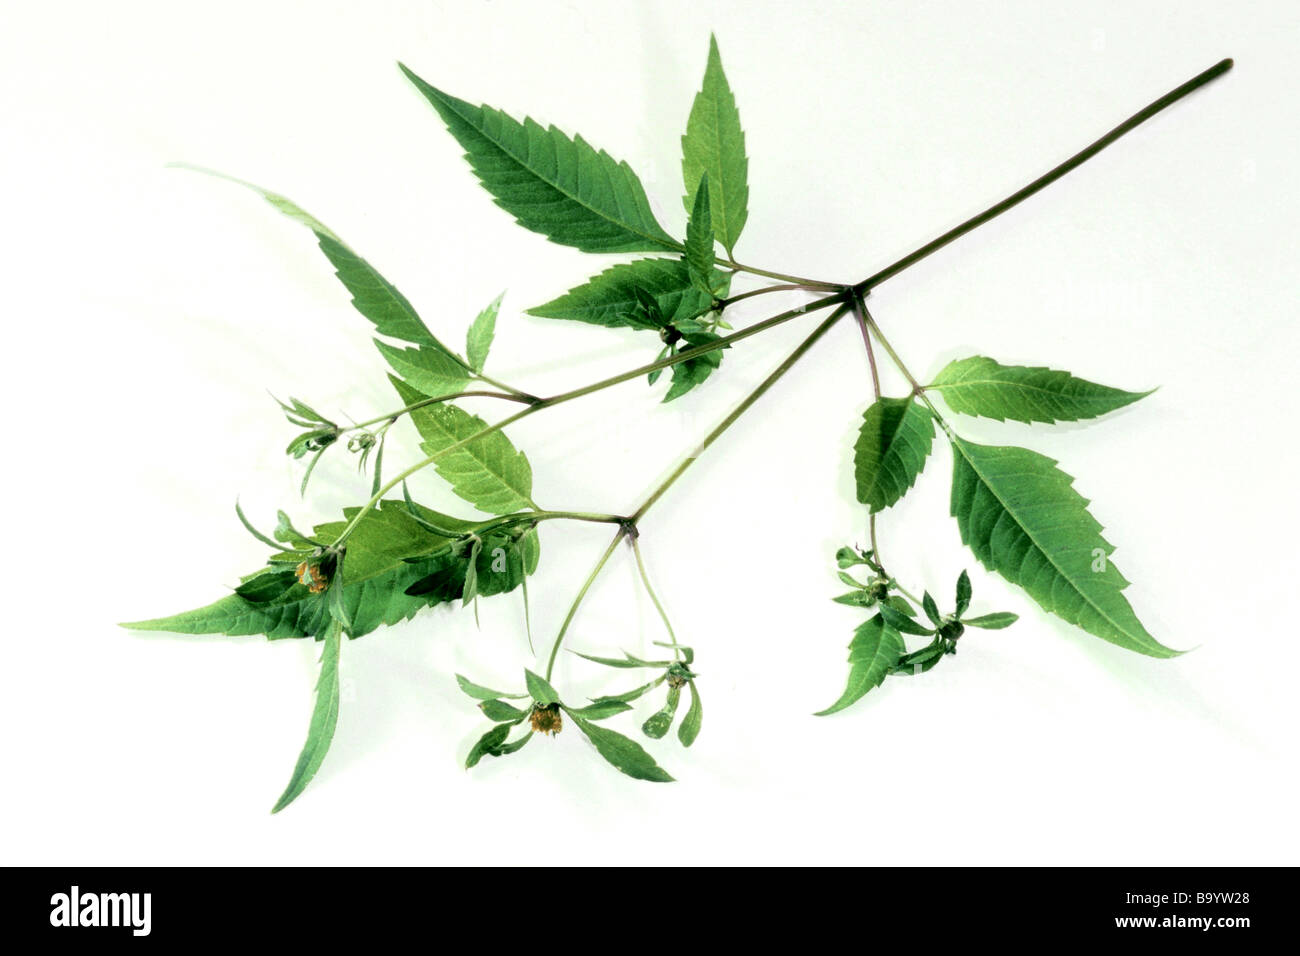 Three-lobe Beggarticks (Bidens tripartita), flowering twig, studio picture. - Stock Image